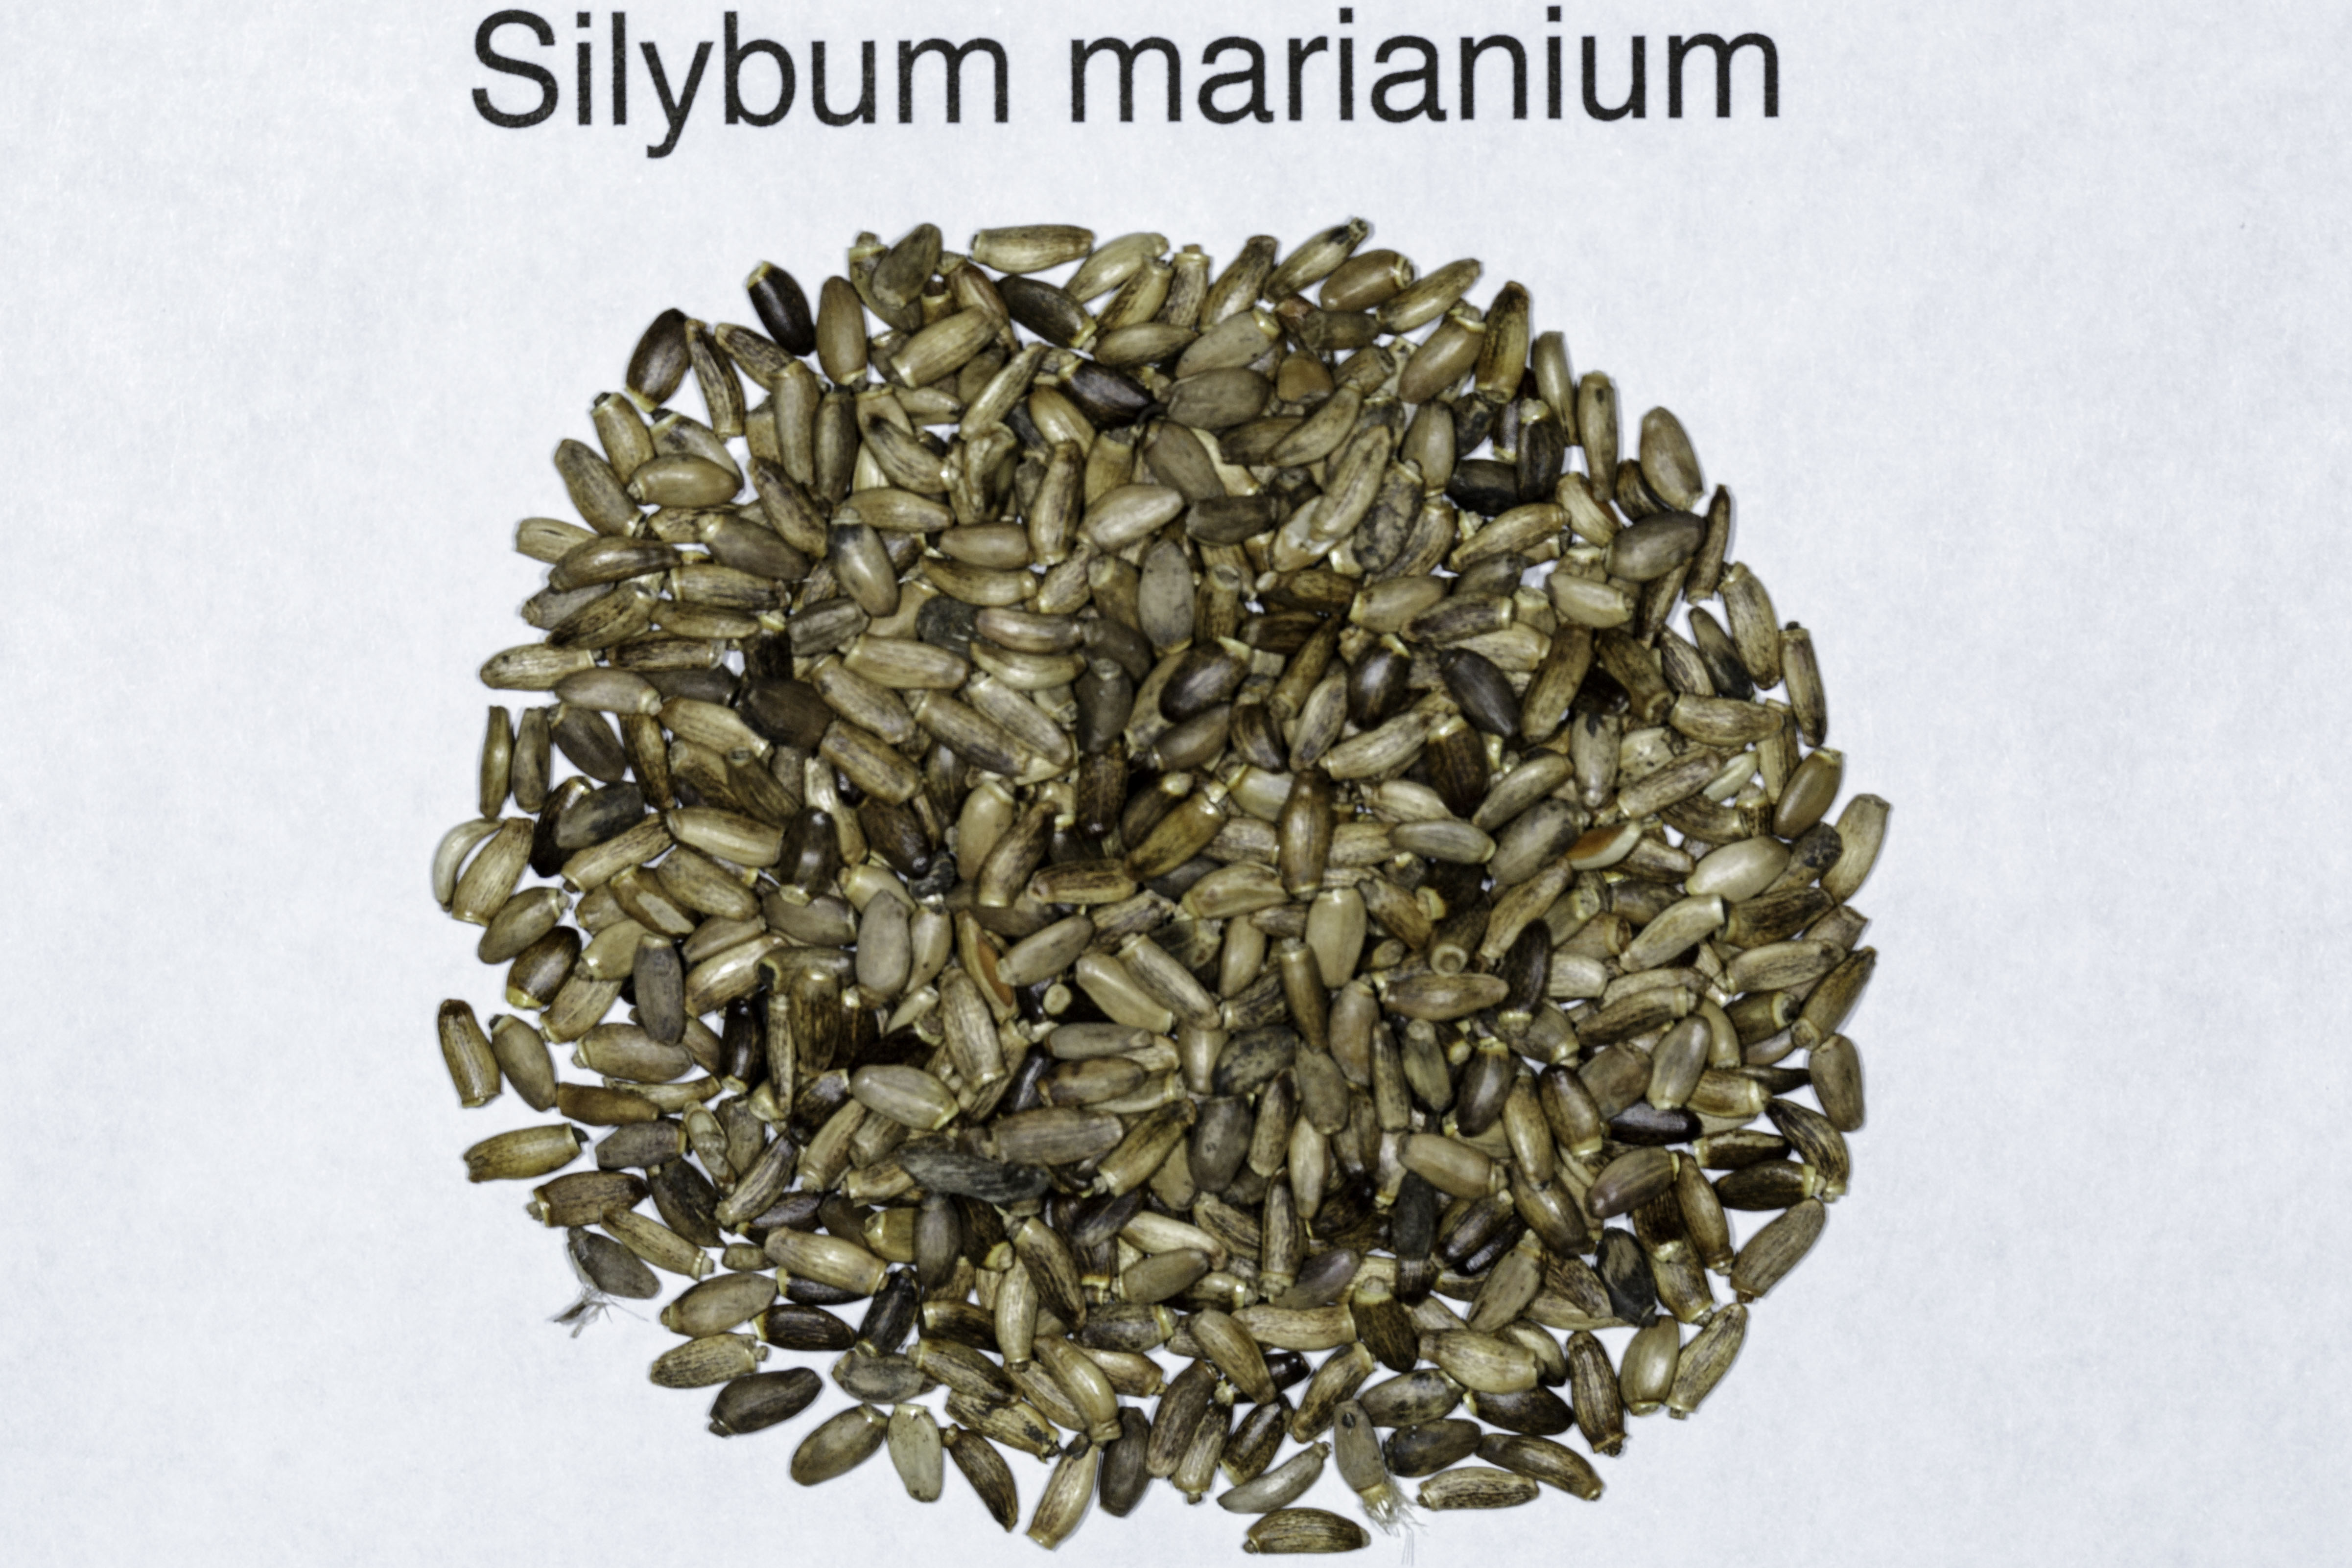 A top down view of a small pile of Silybum marianum (Milk Thistle) seeds.